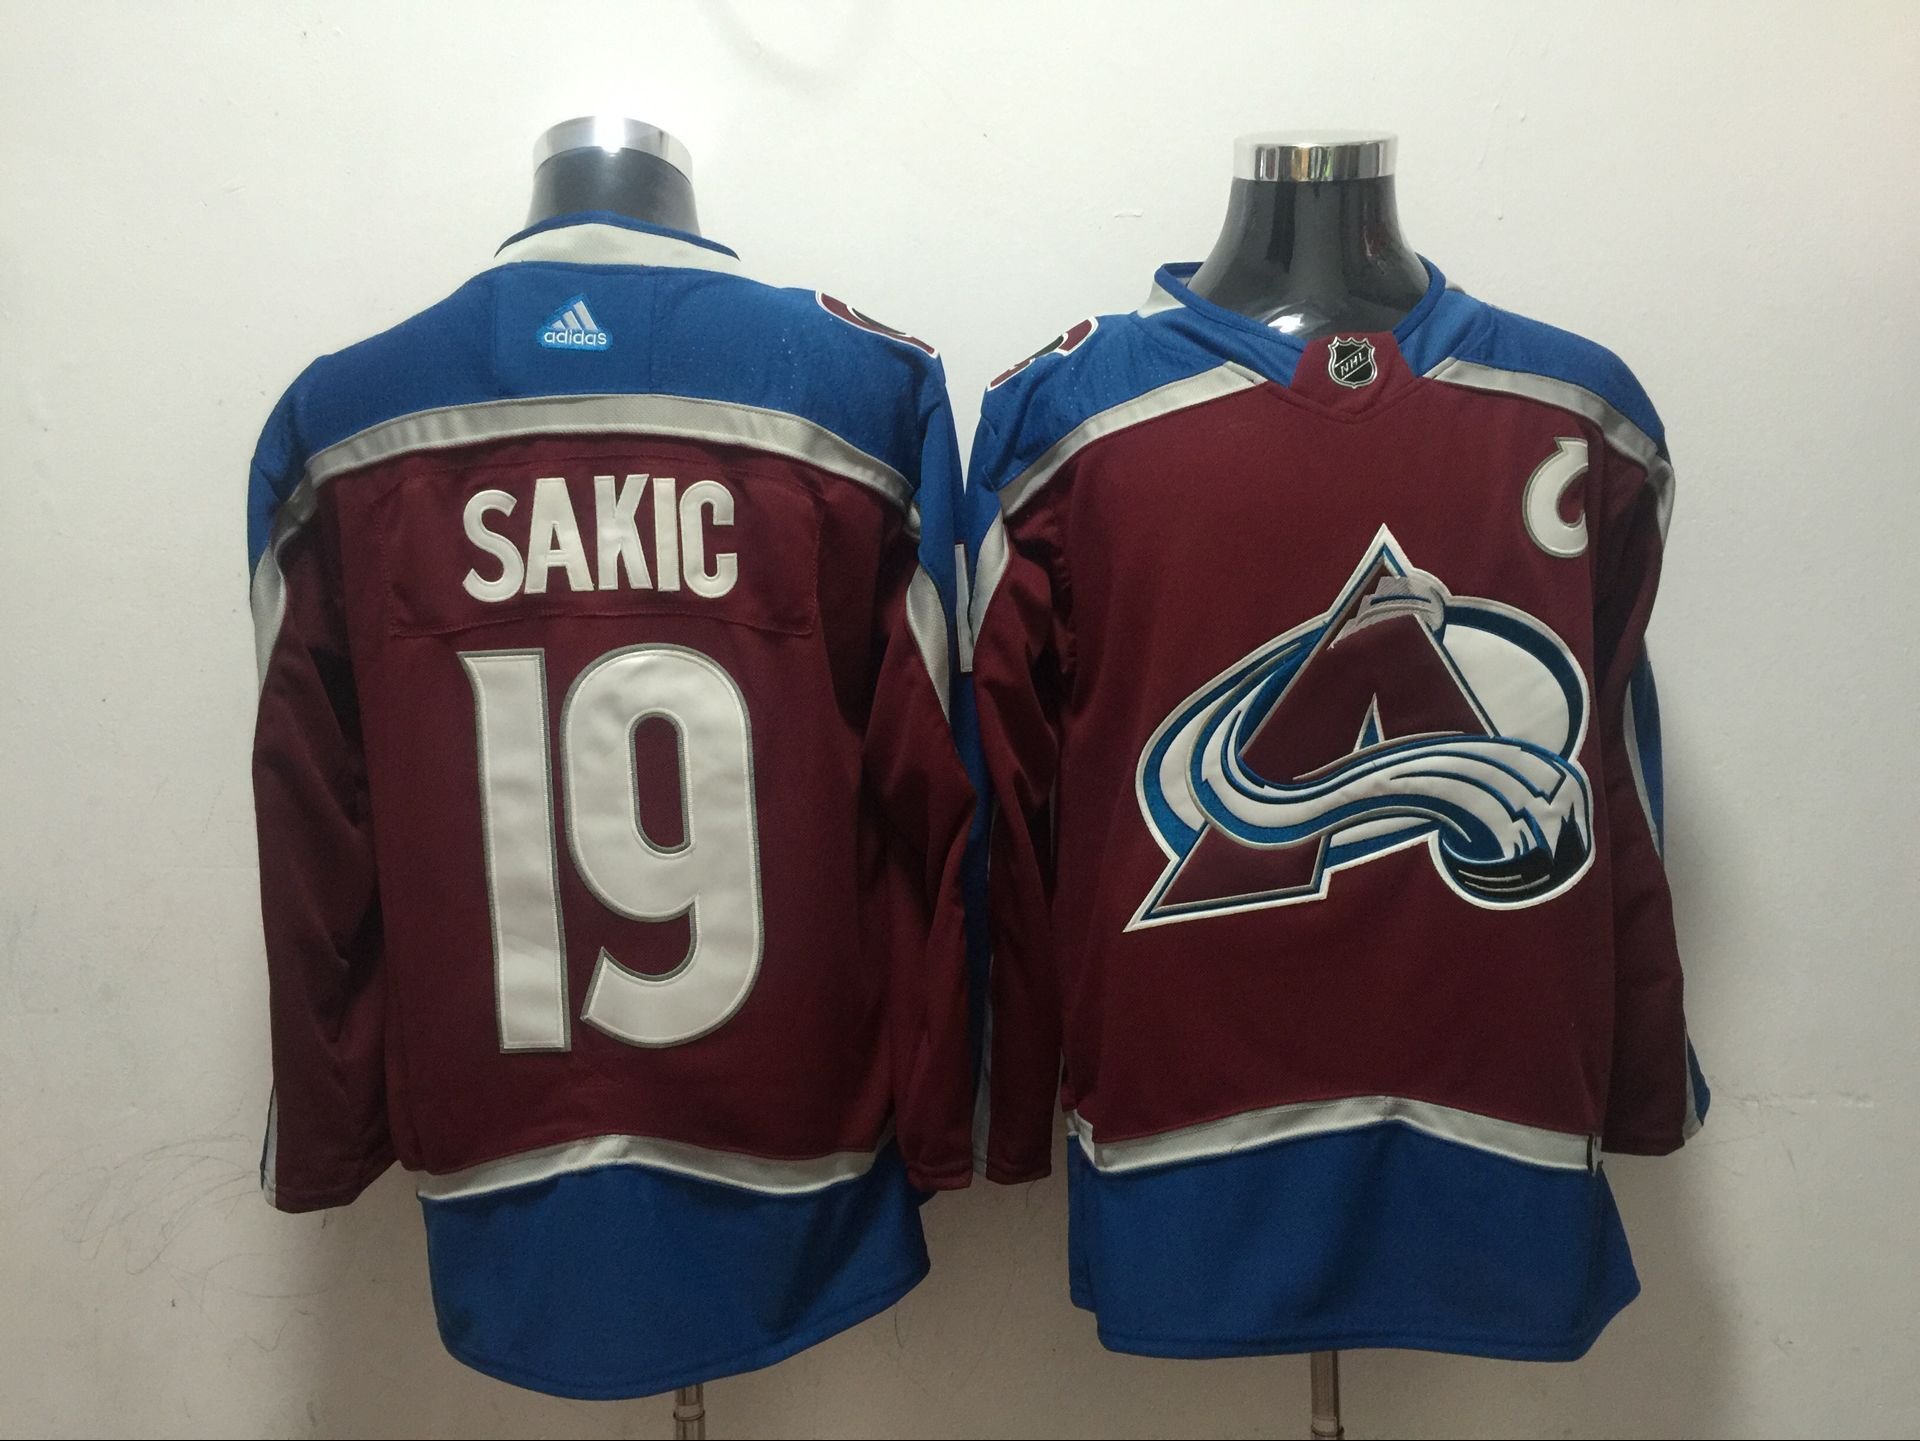 934221dab08 ... promo code for men colorado avalanche 19 sakic red adidas hockey  stitched nhl jerseys 0d92d dfaaf